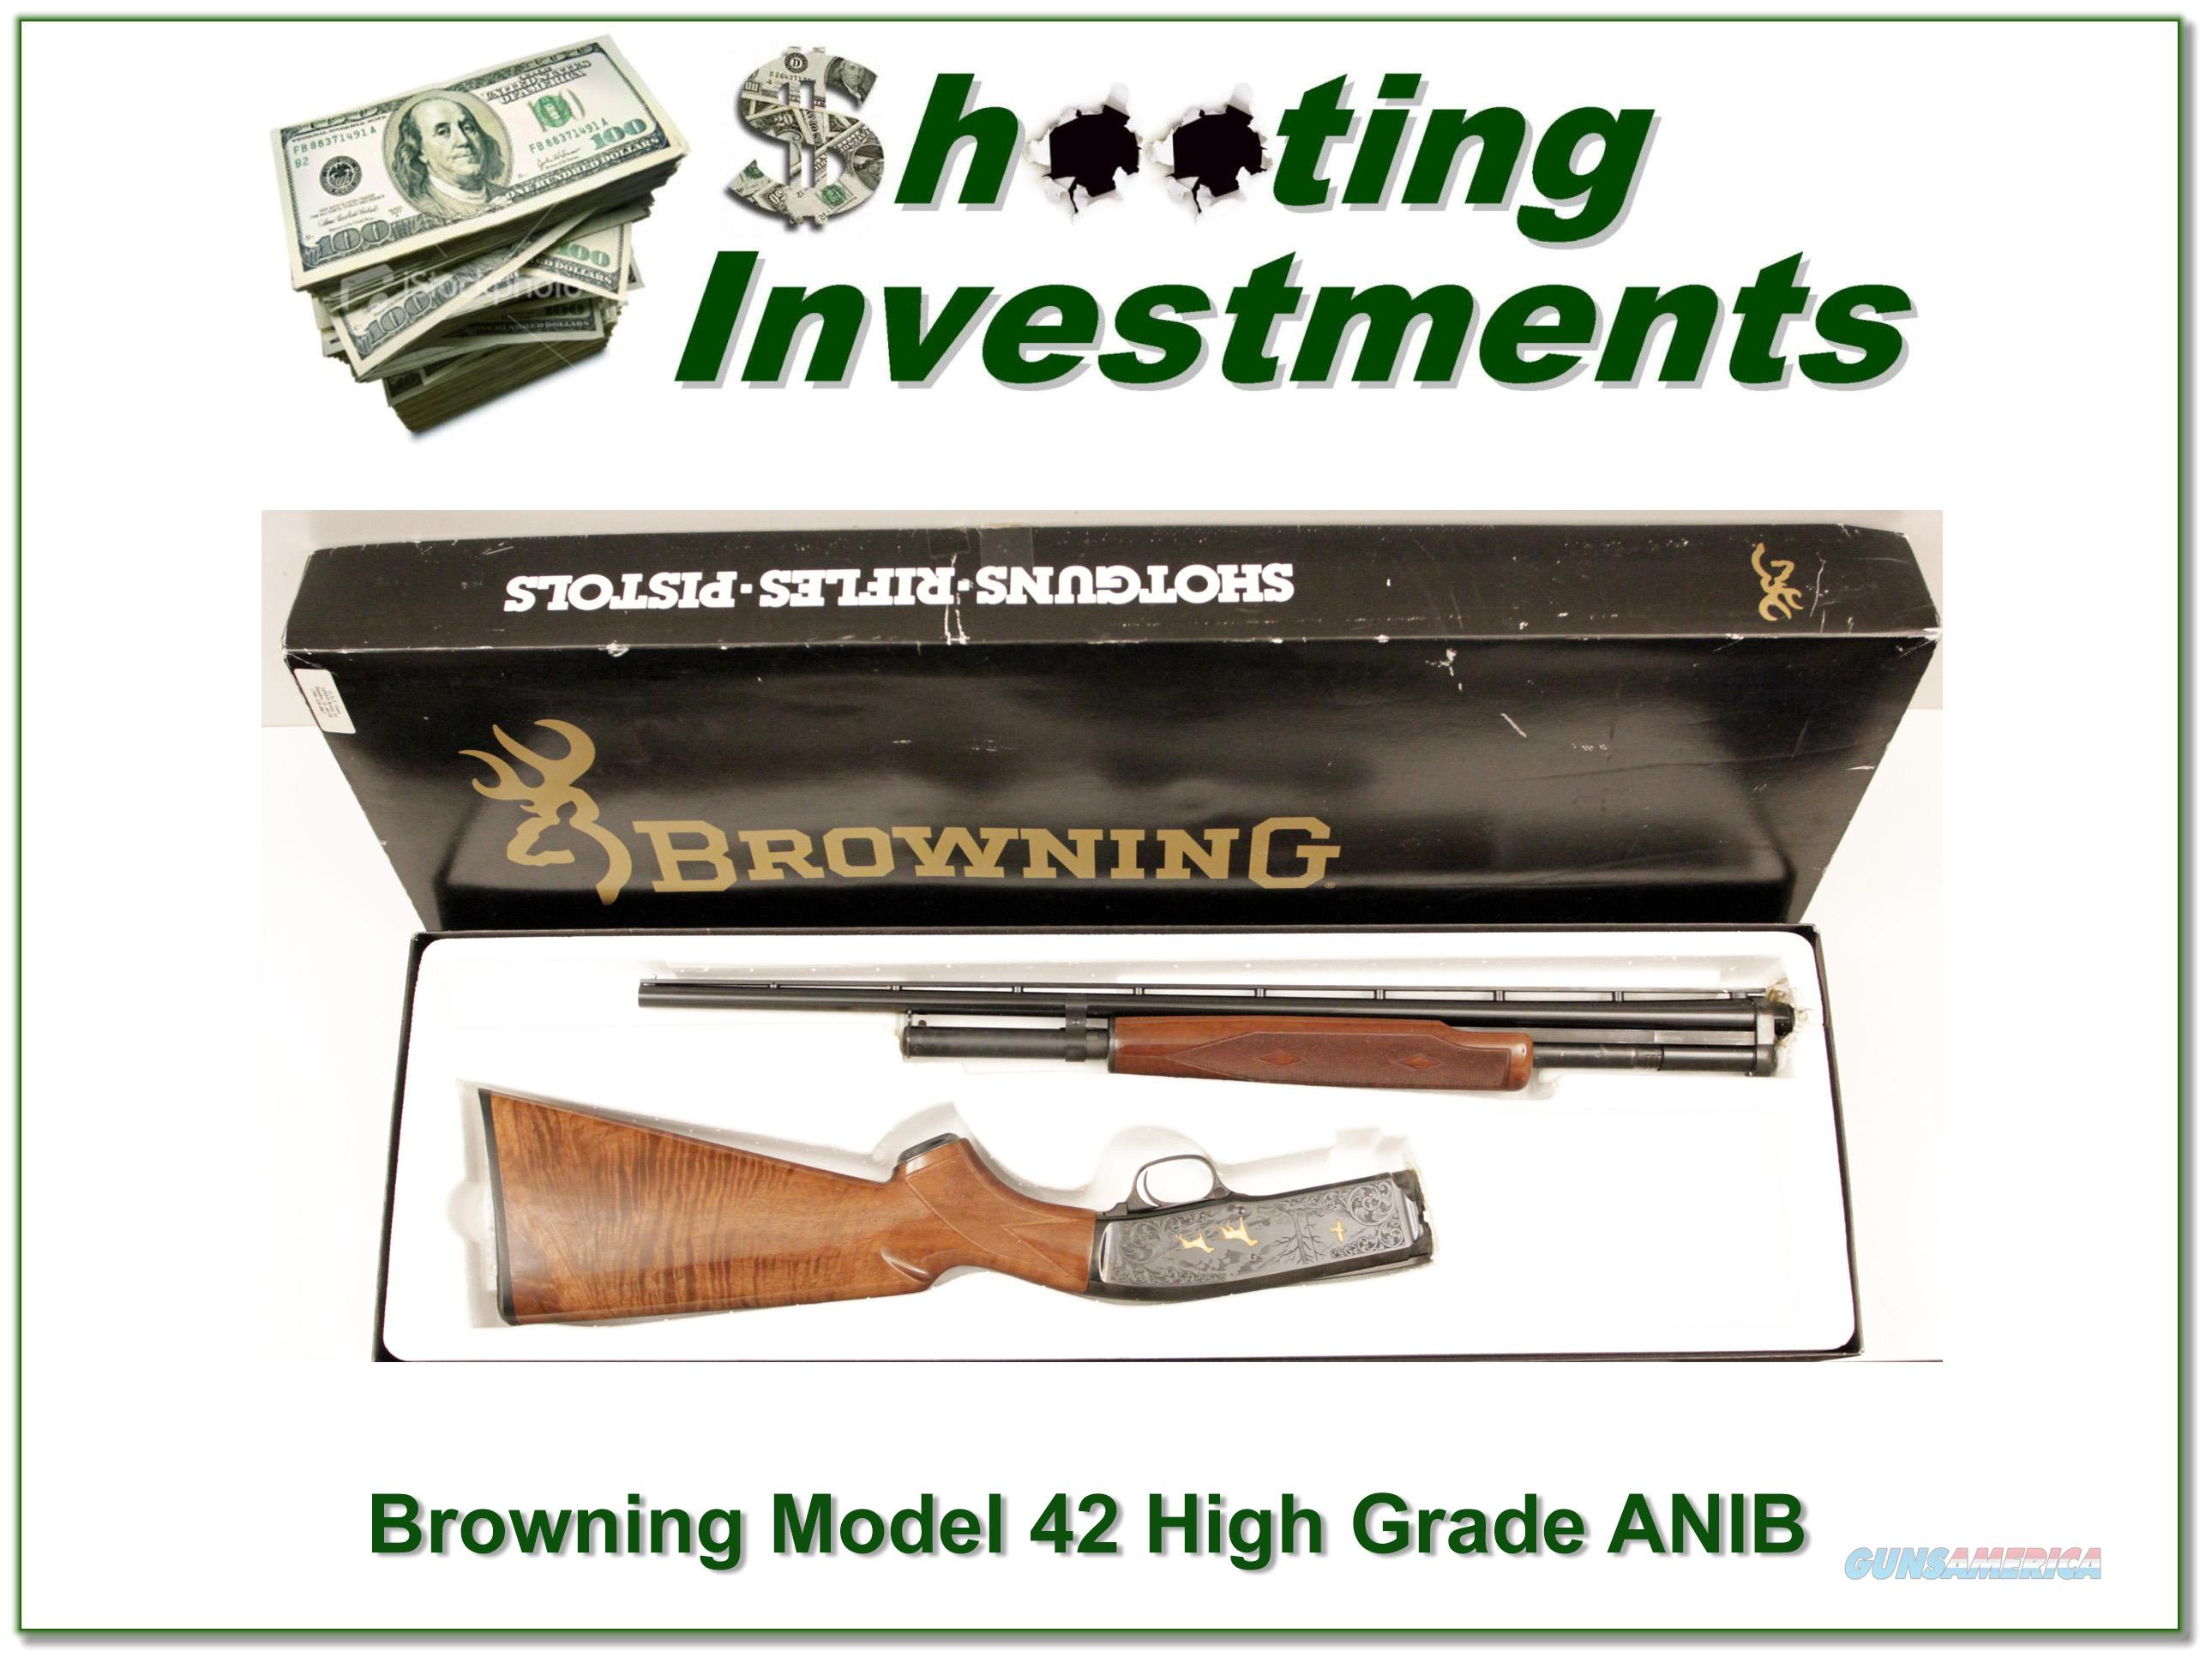 Browning Model 42 High Grade 5 410 Gauge ANIB  Guns > Shotguns > Browning Shotguns > Pump Action > Hunting